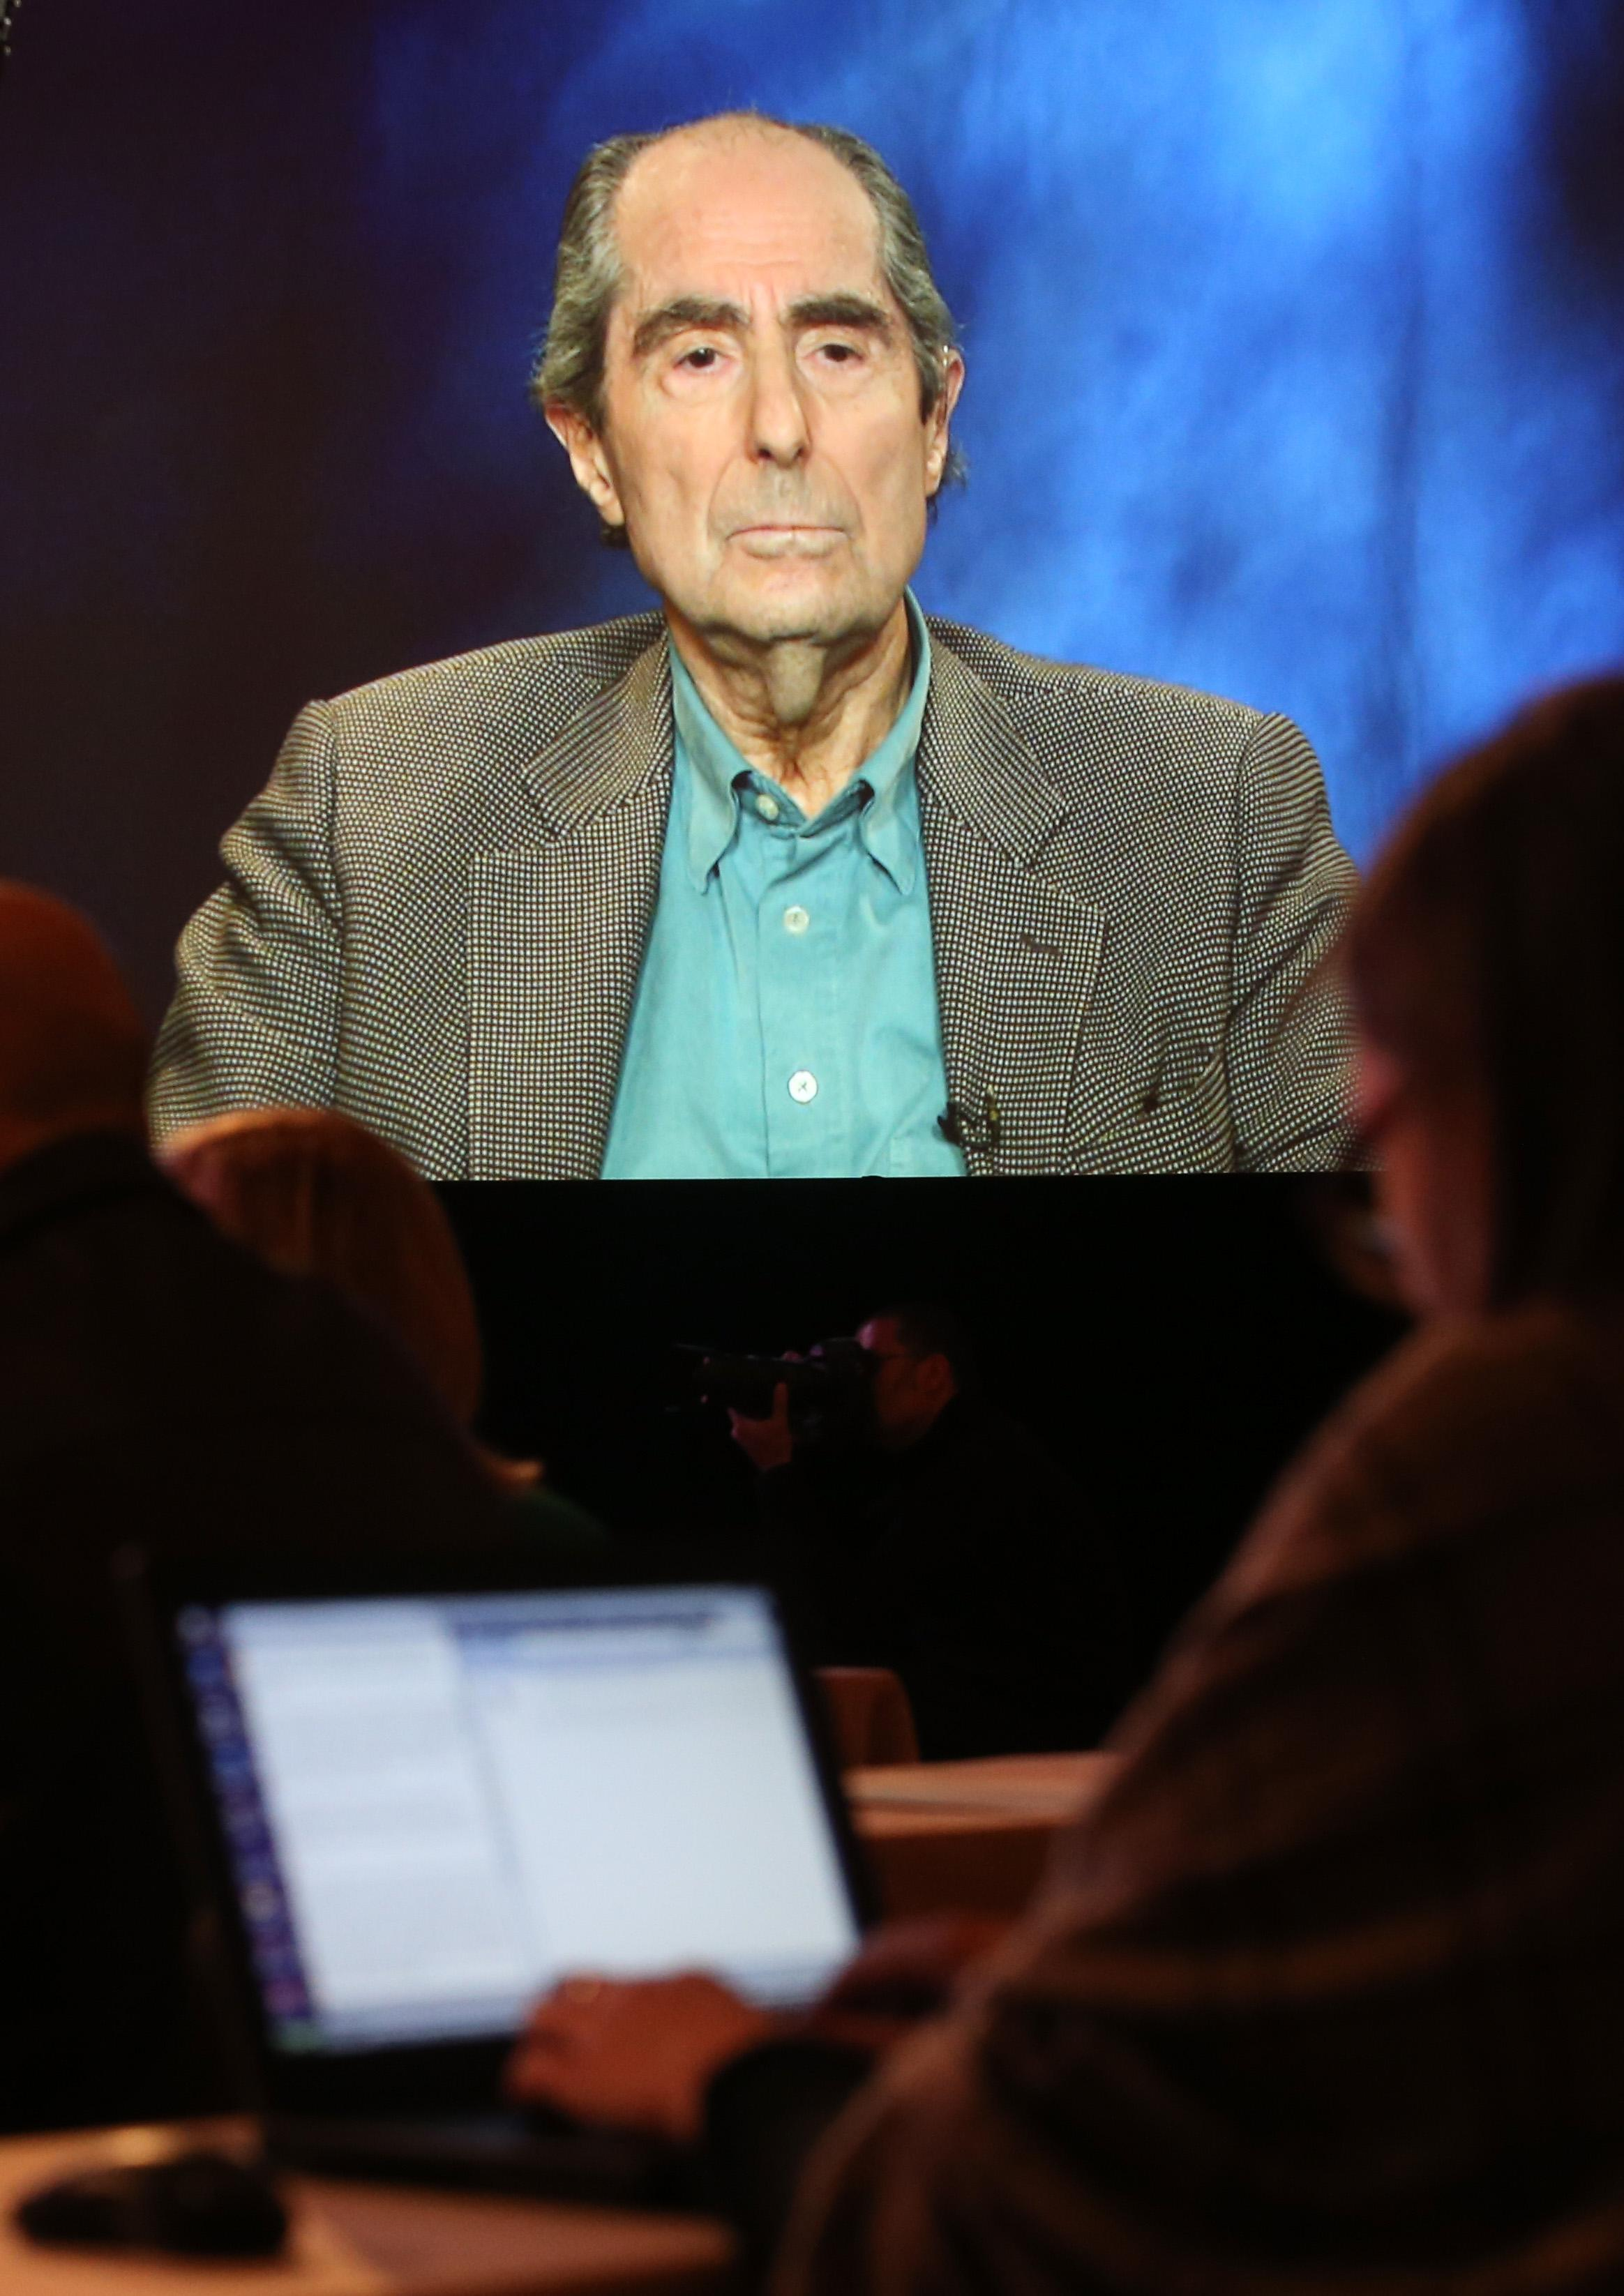 Philip Roth is projected onscreen as he speaks via satellite video feed to the audience during the PBS panel of 'AMERICAN MASTERS Philip Roth: Unmasked' at the 2013 Winter Television Critics Association Press Tour at the Langham Huntington Hotel & Spa on January 14, 2013 in Pasadena, California.  (Photo by Frederick M. Brown/Getty Images)